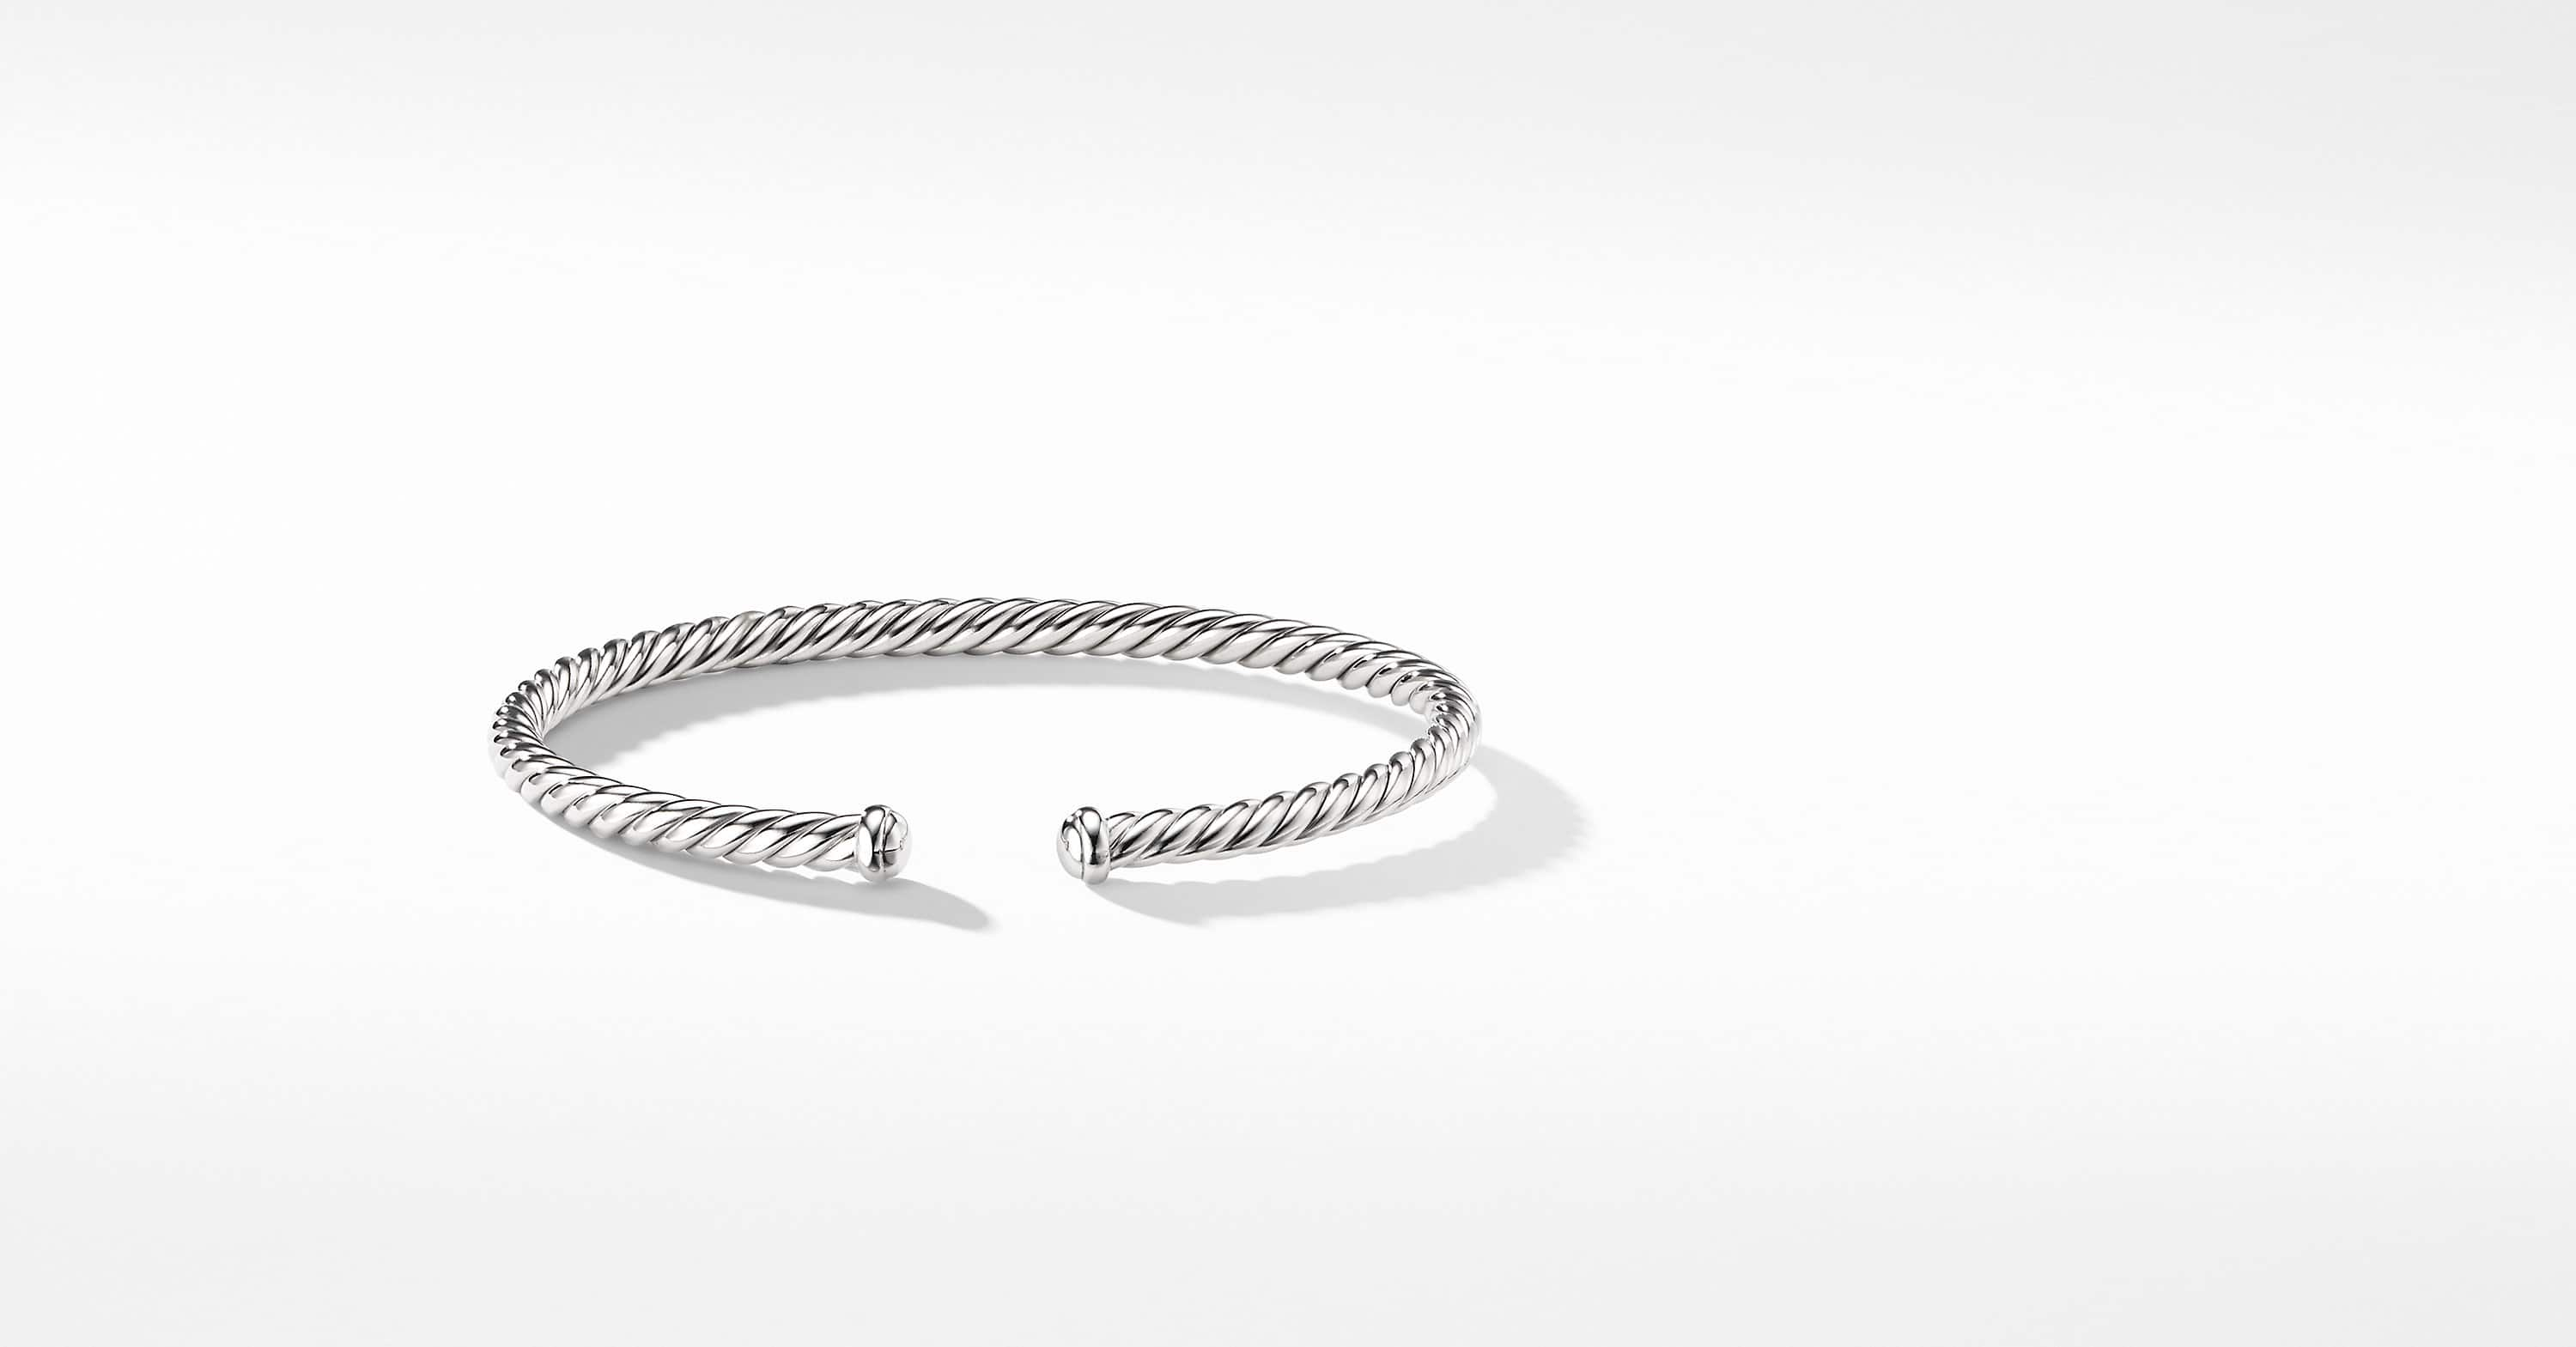 Cable Spira Bracelet in 18k White Gold, 4mm